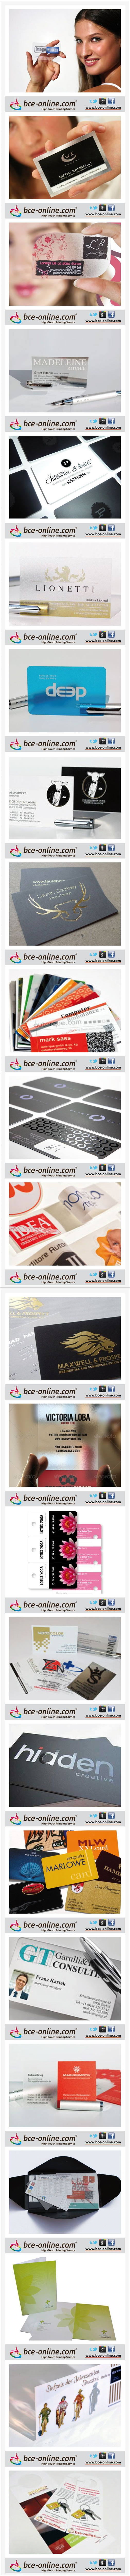 Clear Business Cards Gallery http://www.bce-online.com/en: Business Card